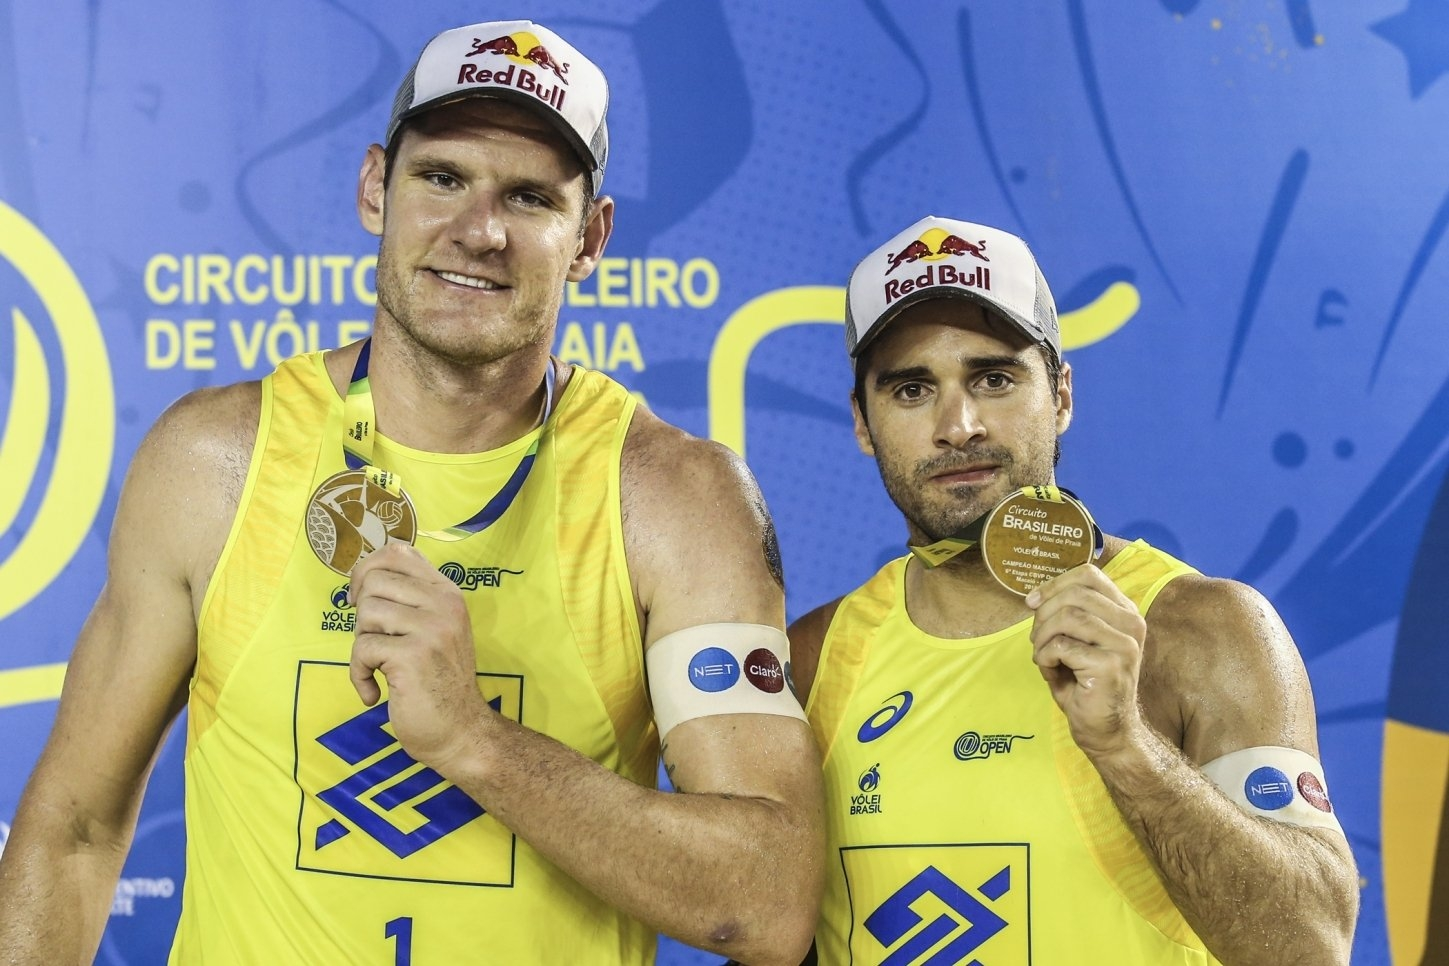 Alison and Bruno have won two golds and one silver in the last three events of the Brazilian Tour (Photocredit: CBV)